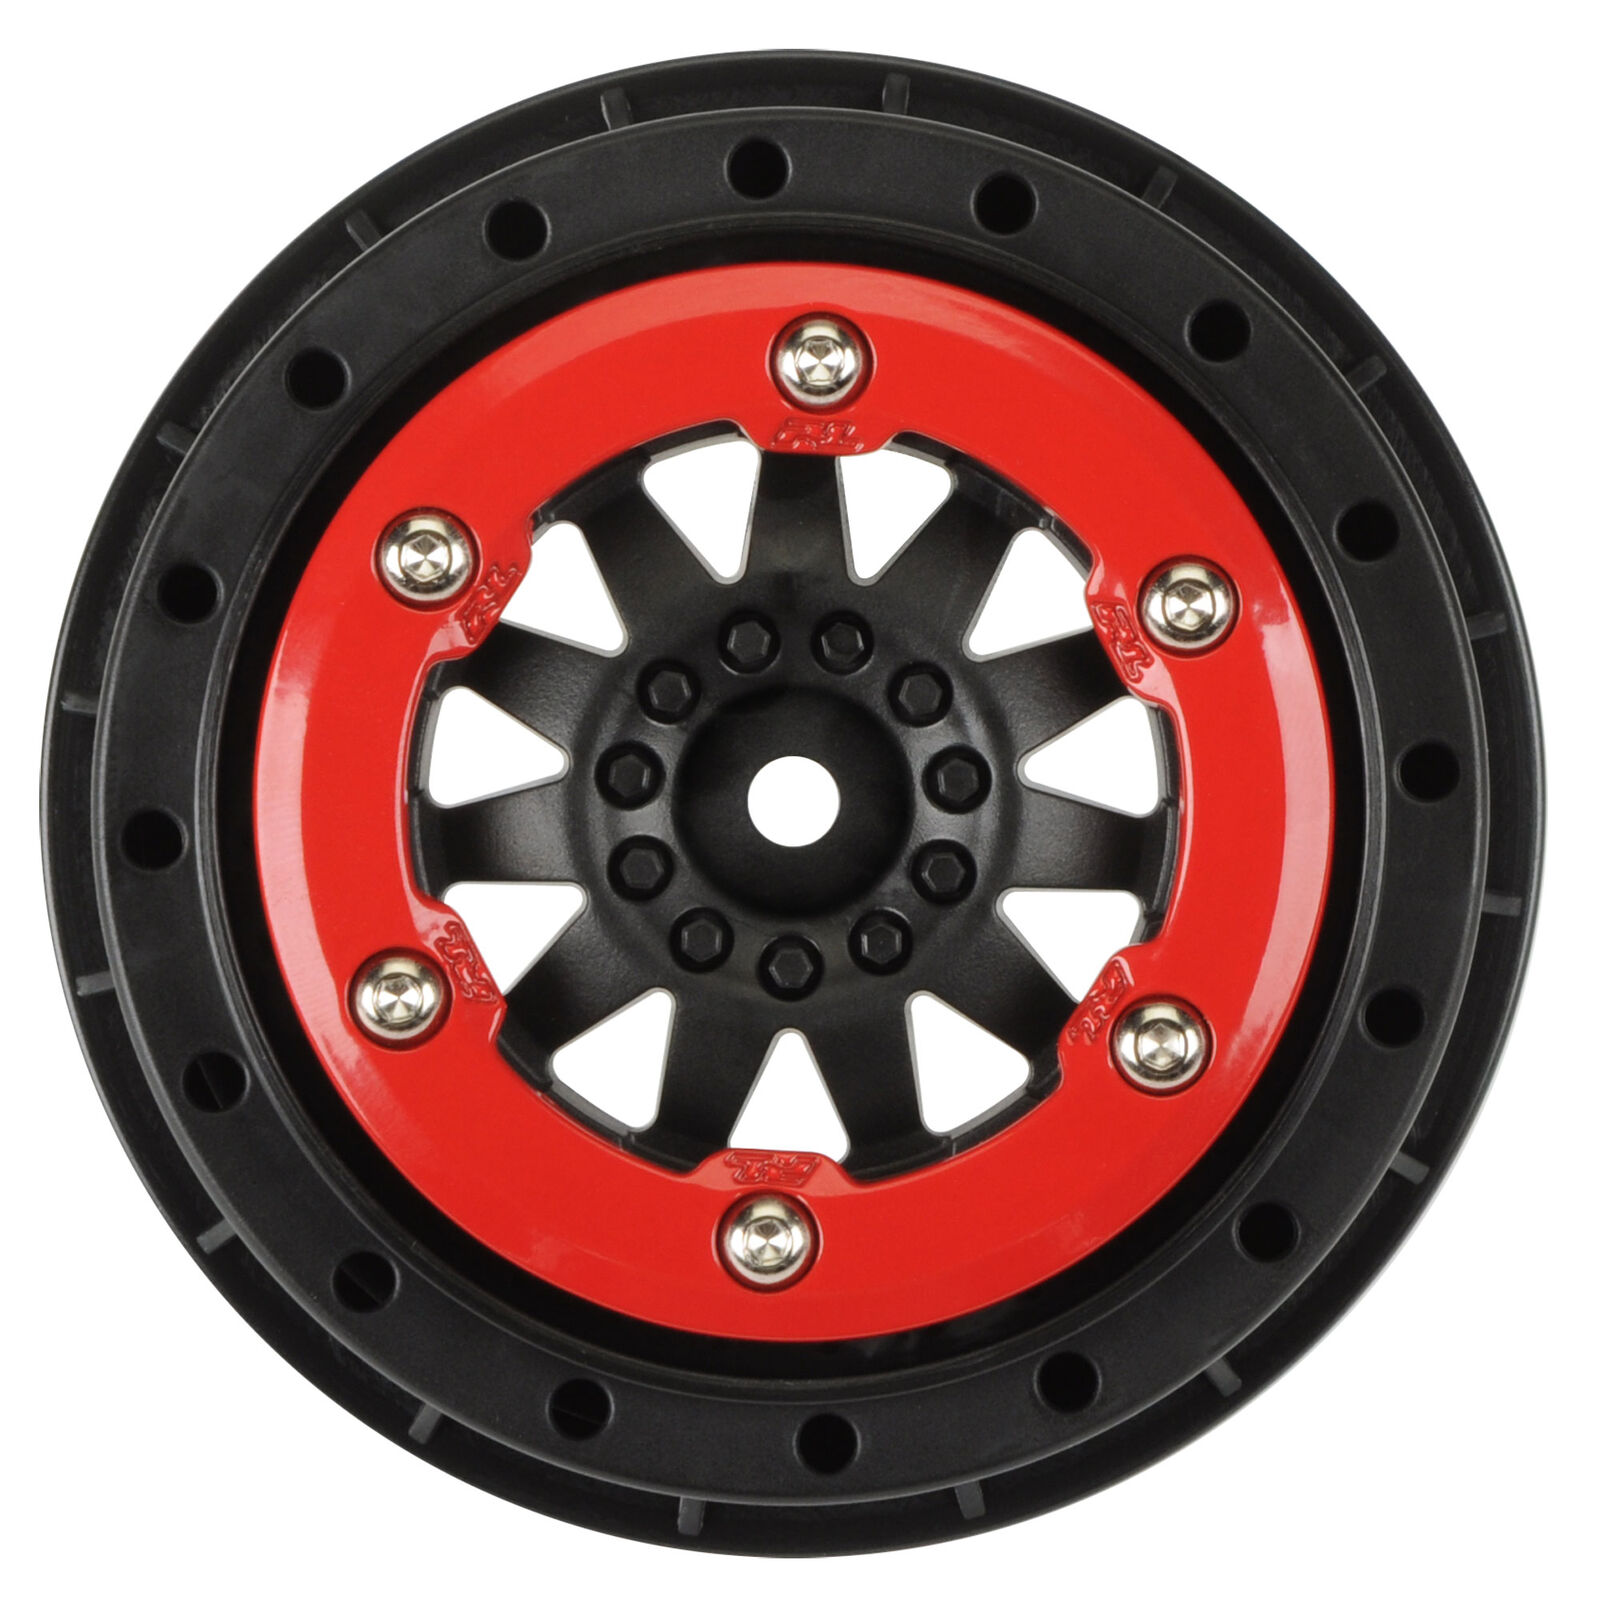 """1/10 F-11 Front/Rear 2.2""""/3.0"""" 12mm Short Course Wheels (2) Red/Blk"""